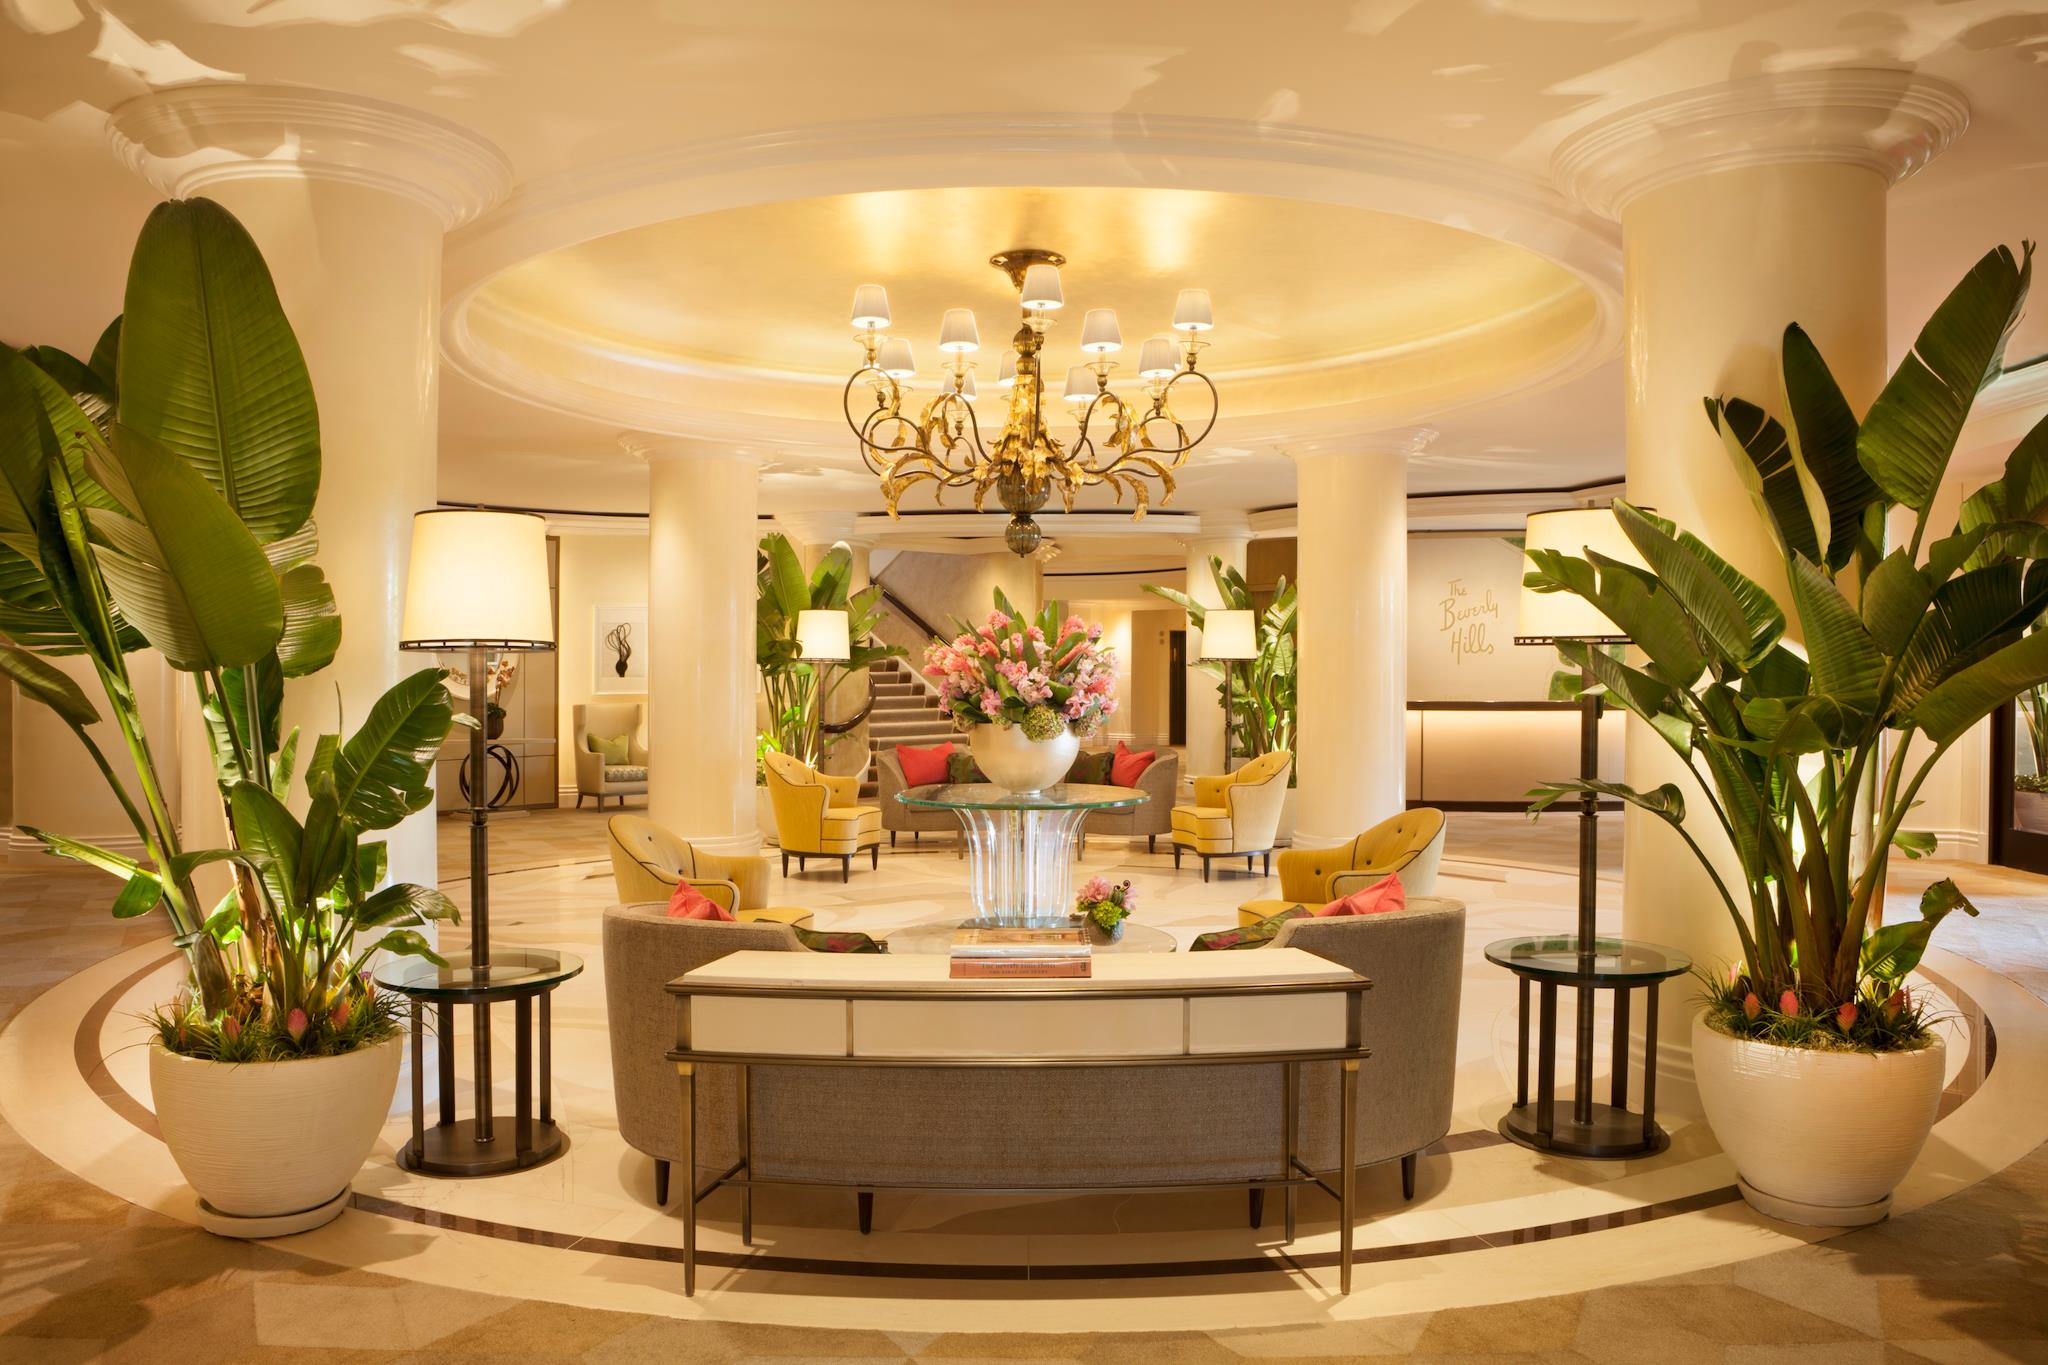 Tropical modern d cor at the beverly hills hotel betterdecoratingbiblebetterdecoratingbible Home decor images